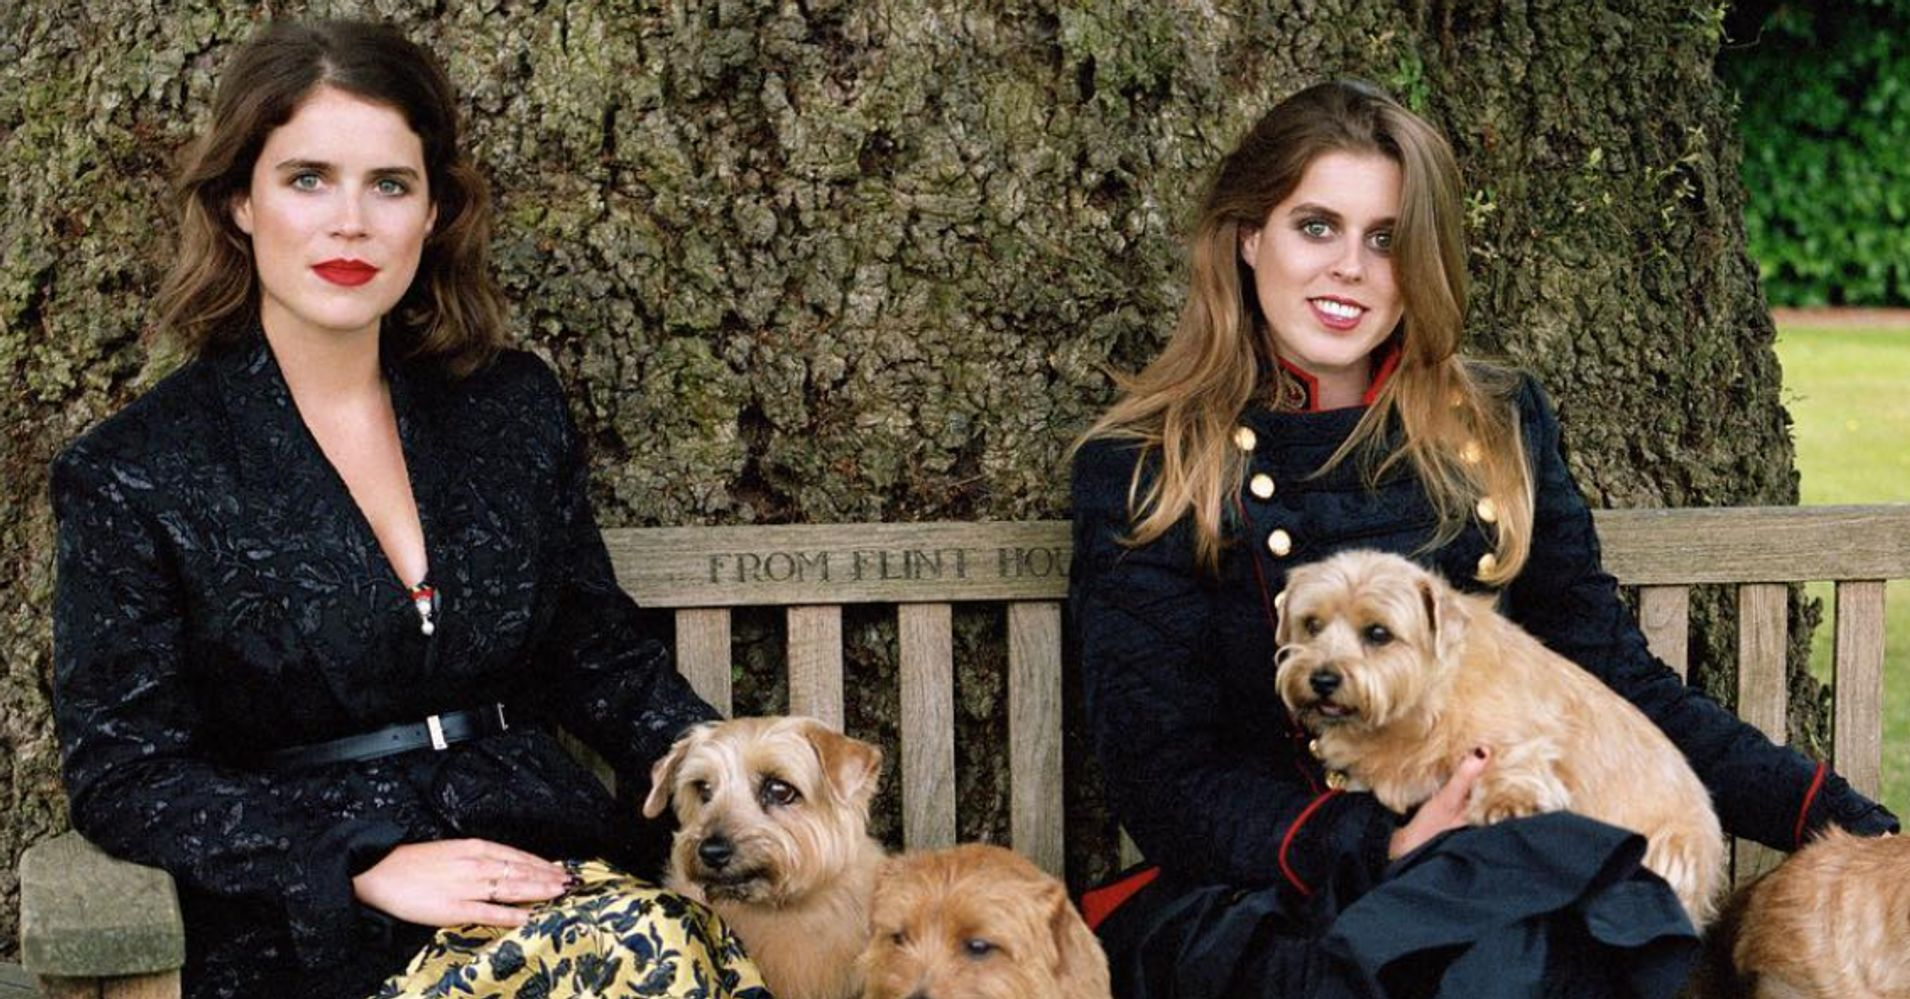 Princesses Beatrice And Eugenie Share The Vogue Spotlight With Rihanna